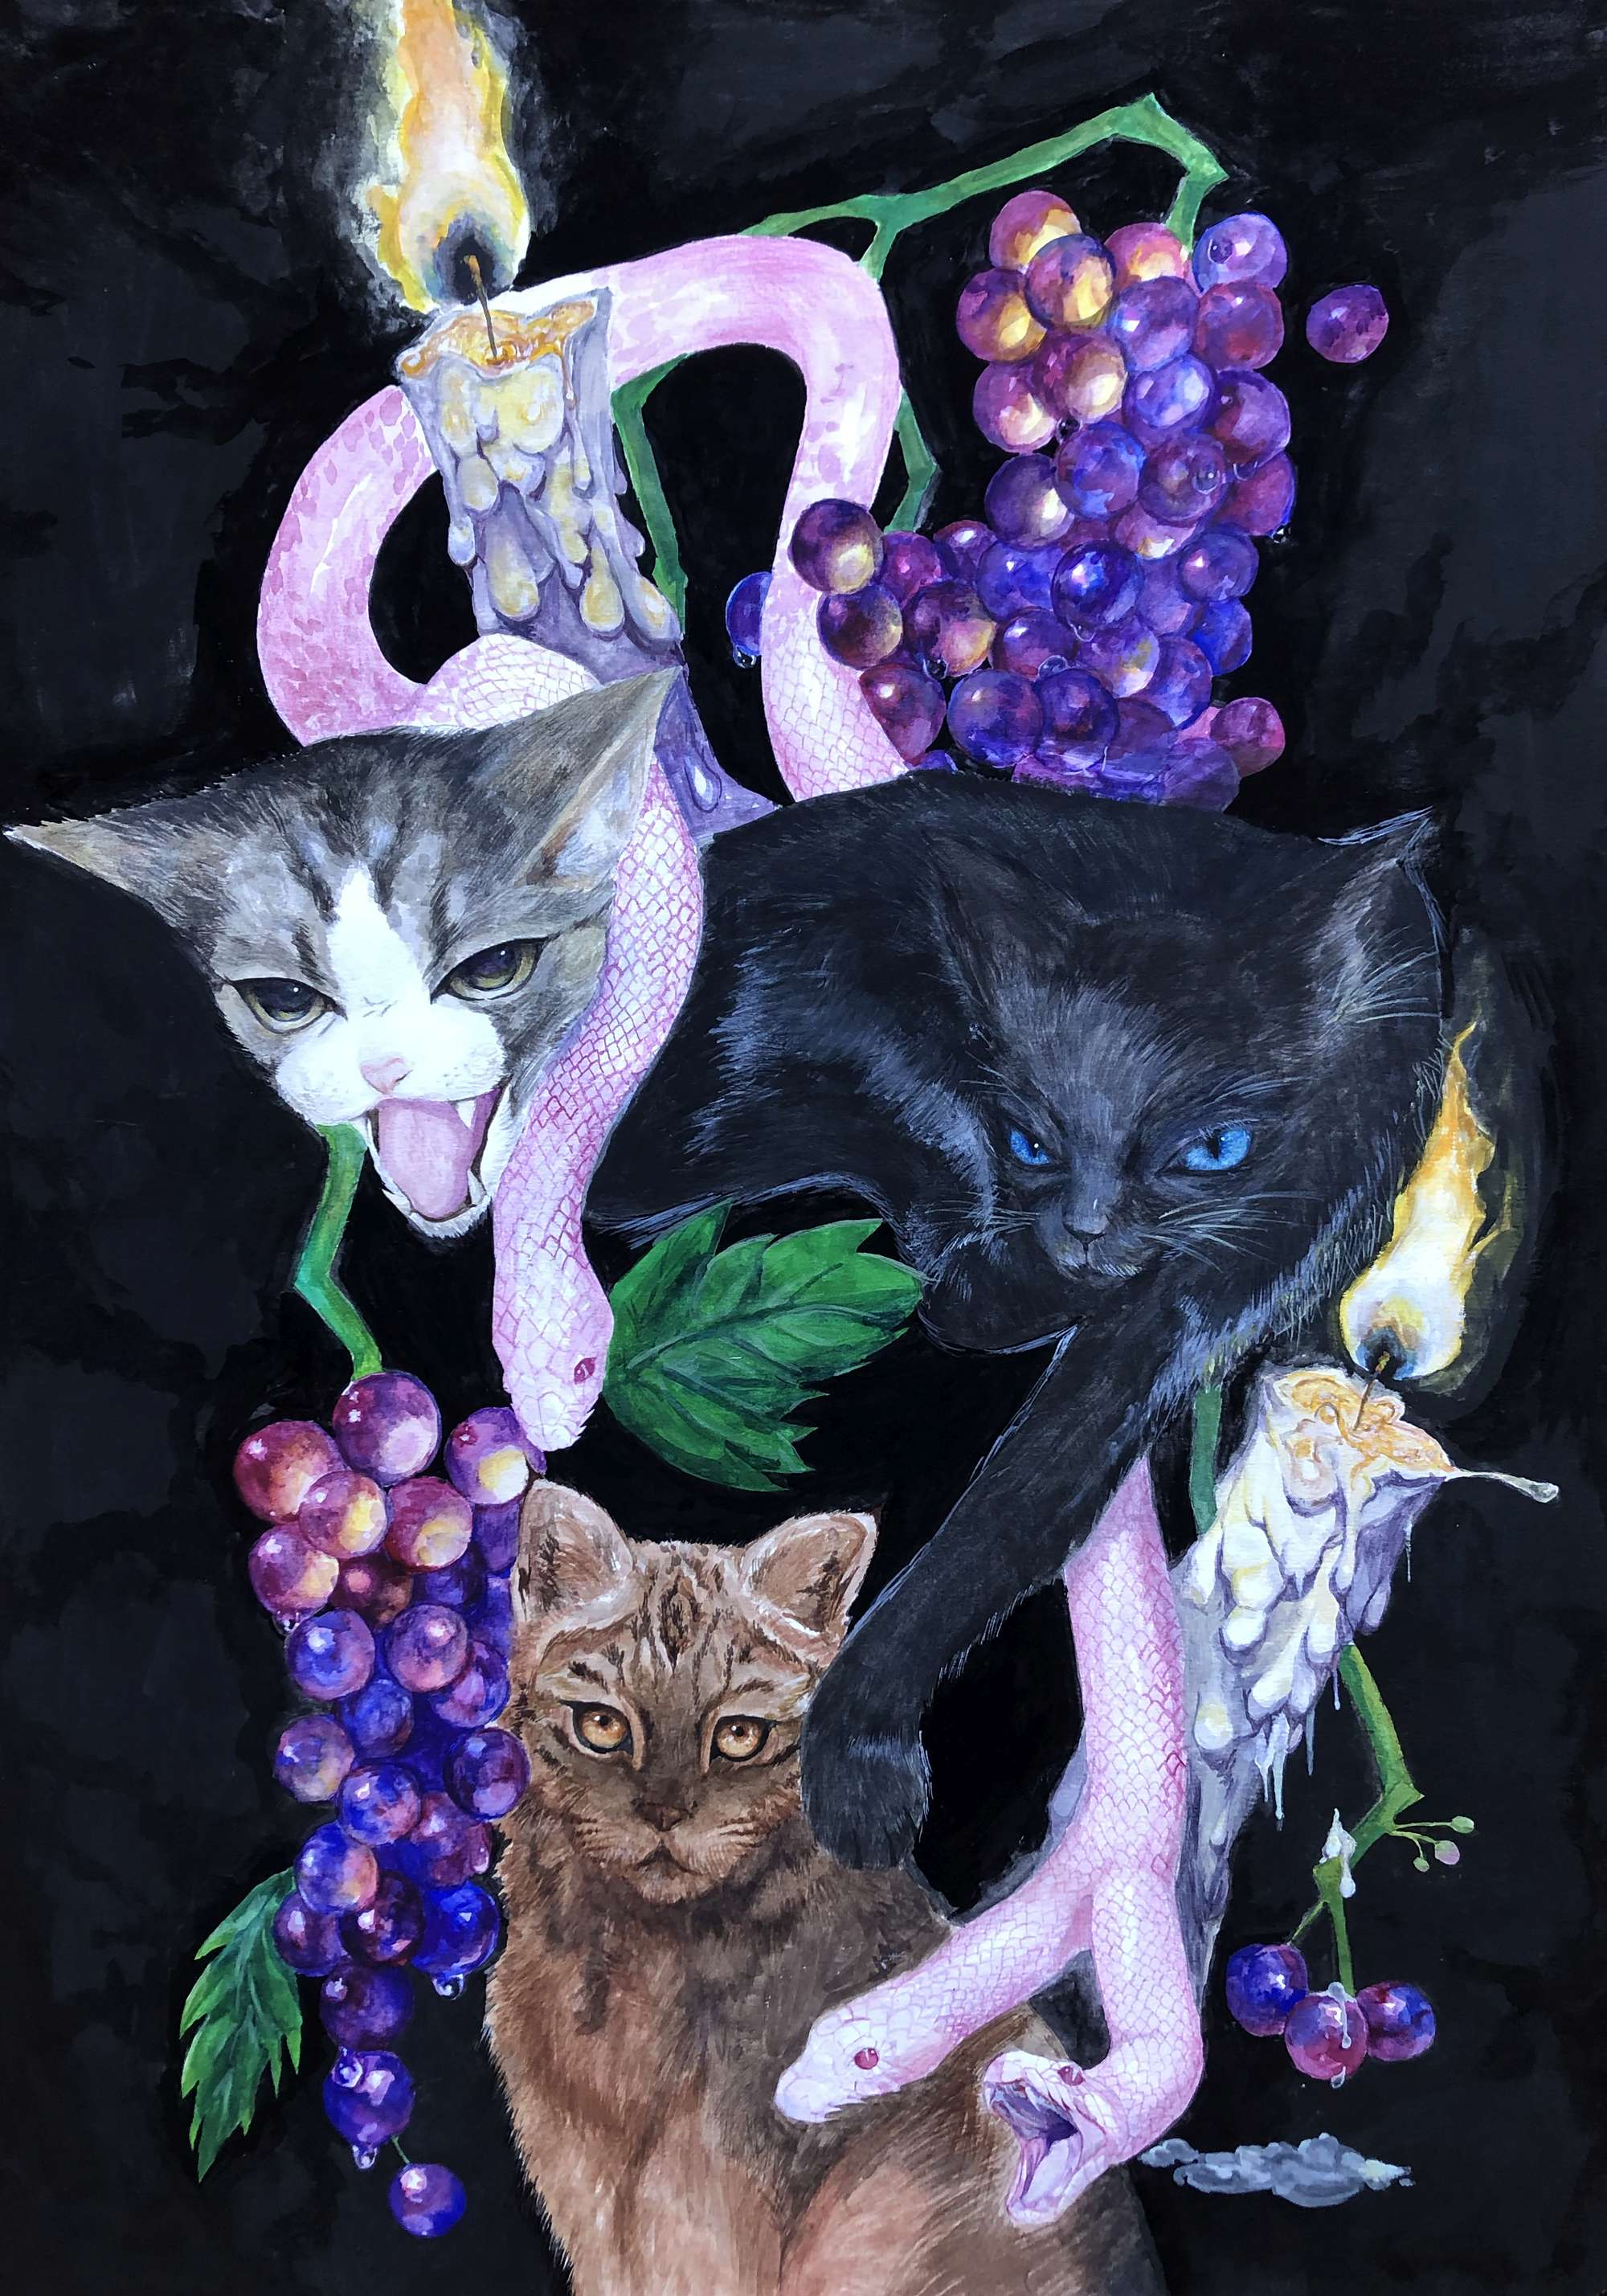 Three Cats, Grapes, Candles and a Snake